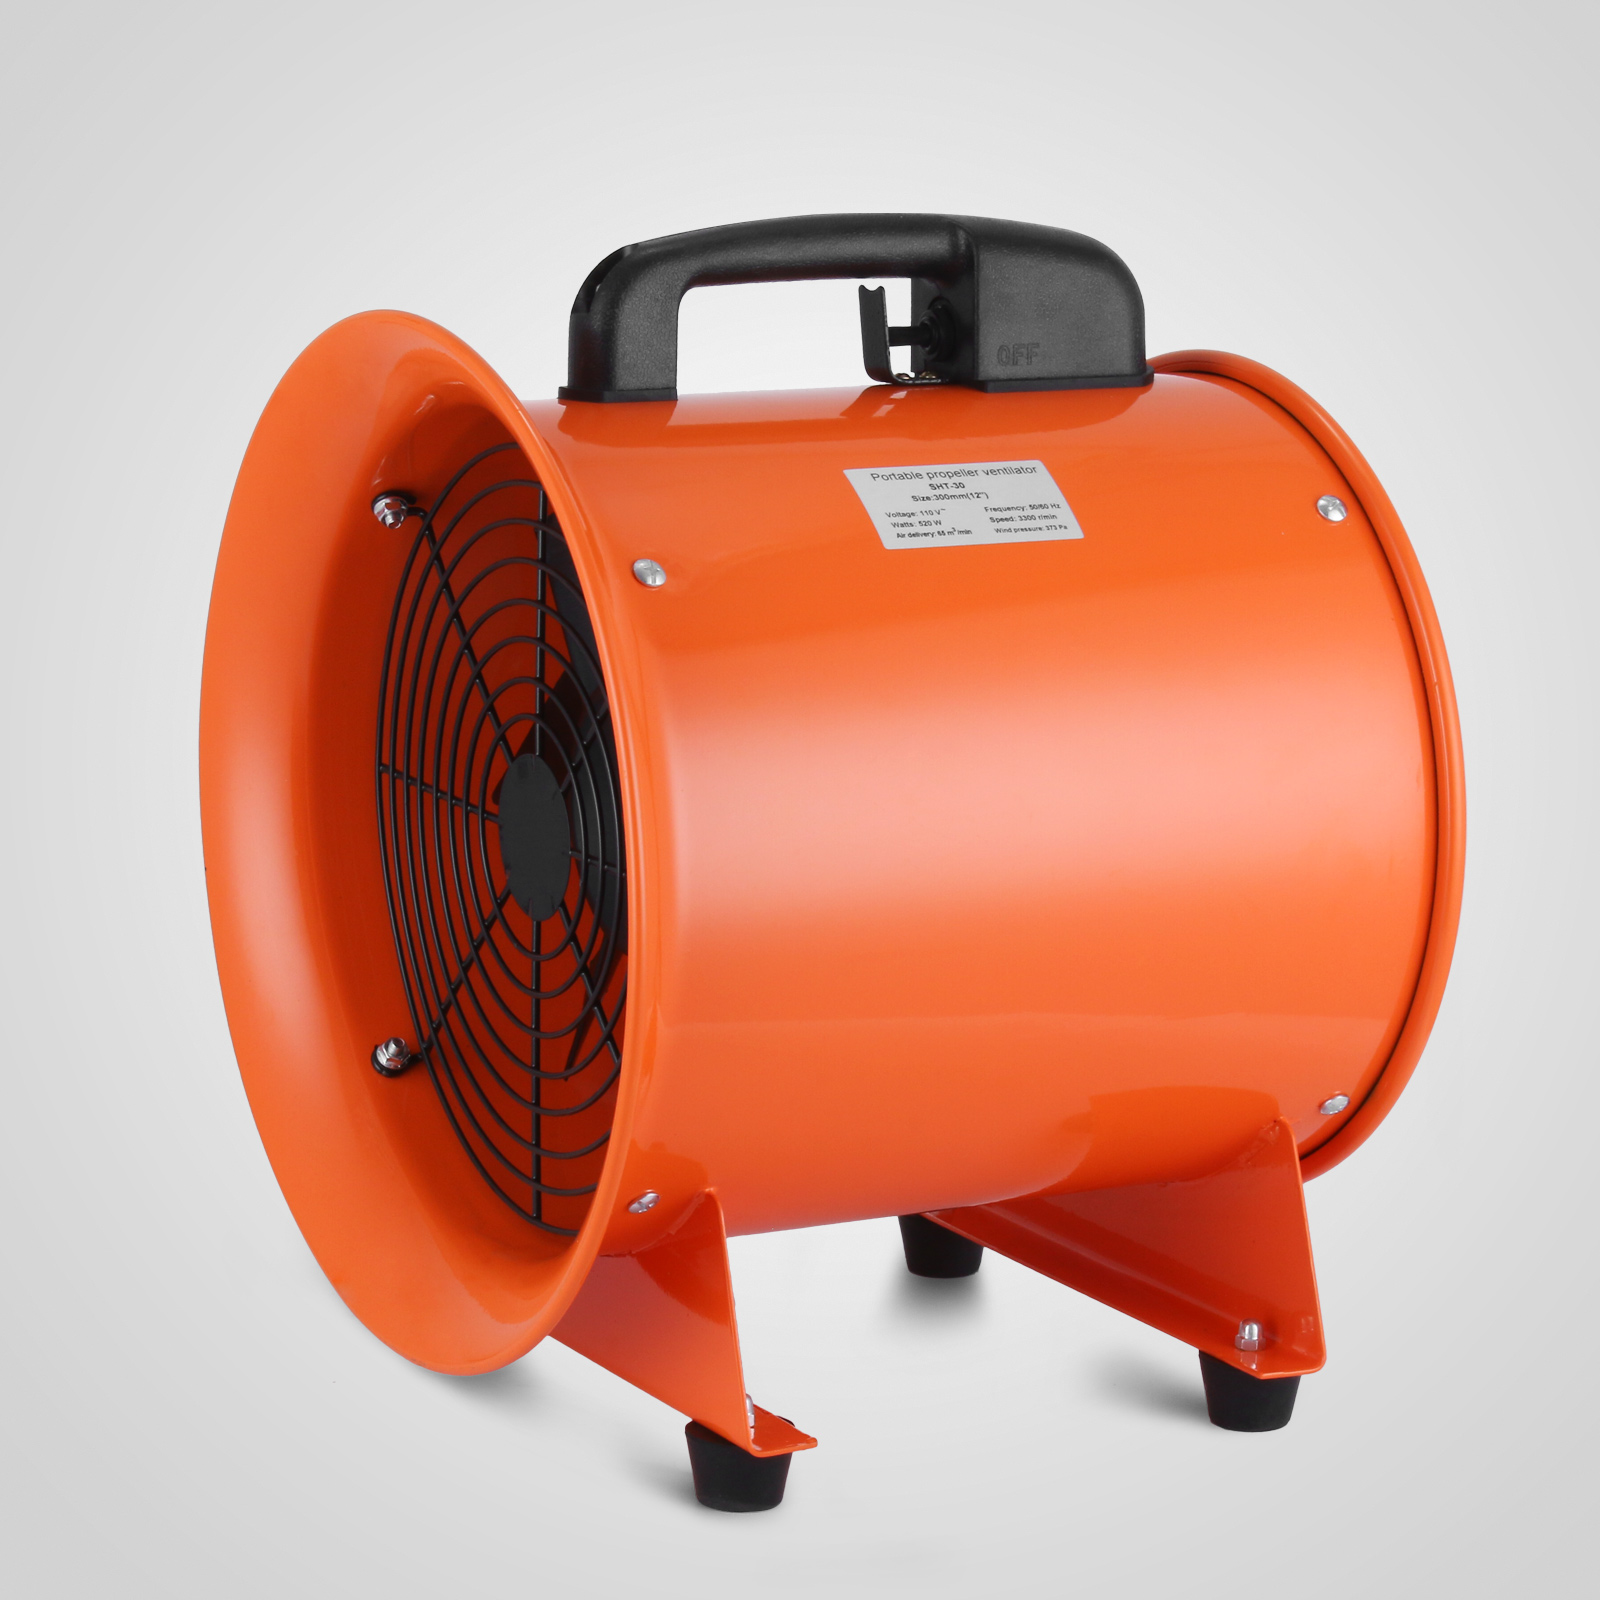 Large Fans Or Blowers : Quot industrial extractor fan blower w duct hose low noise